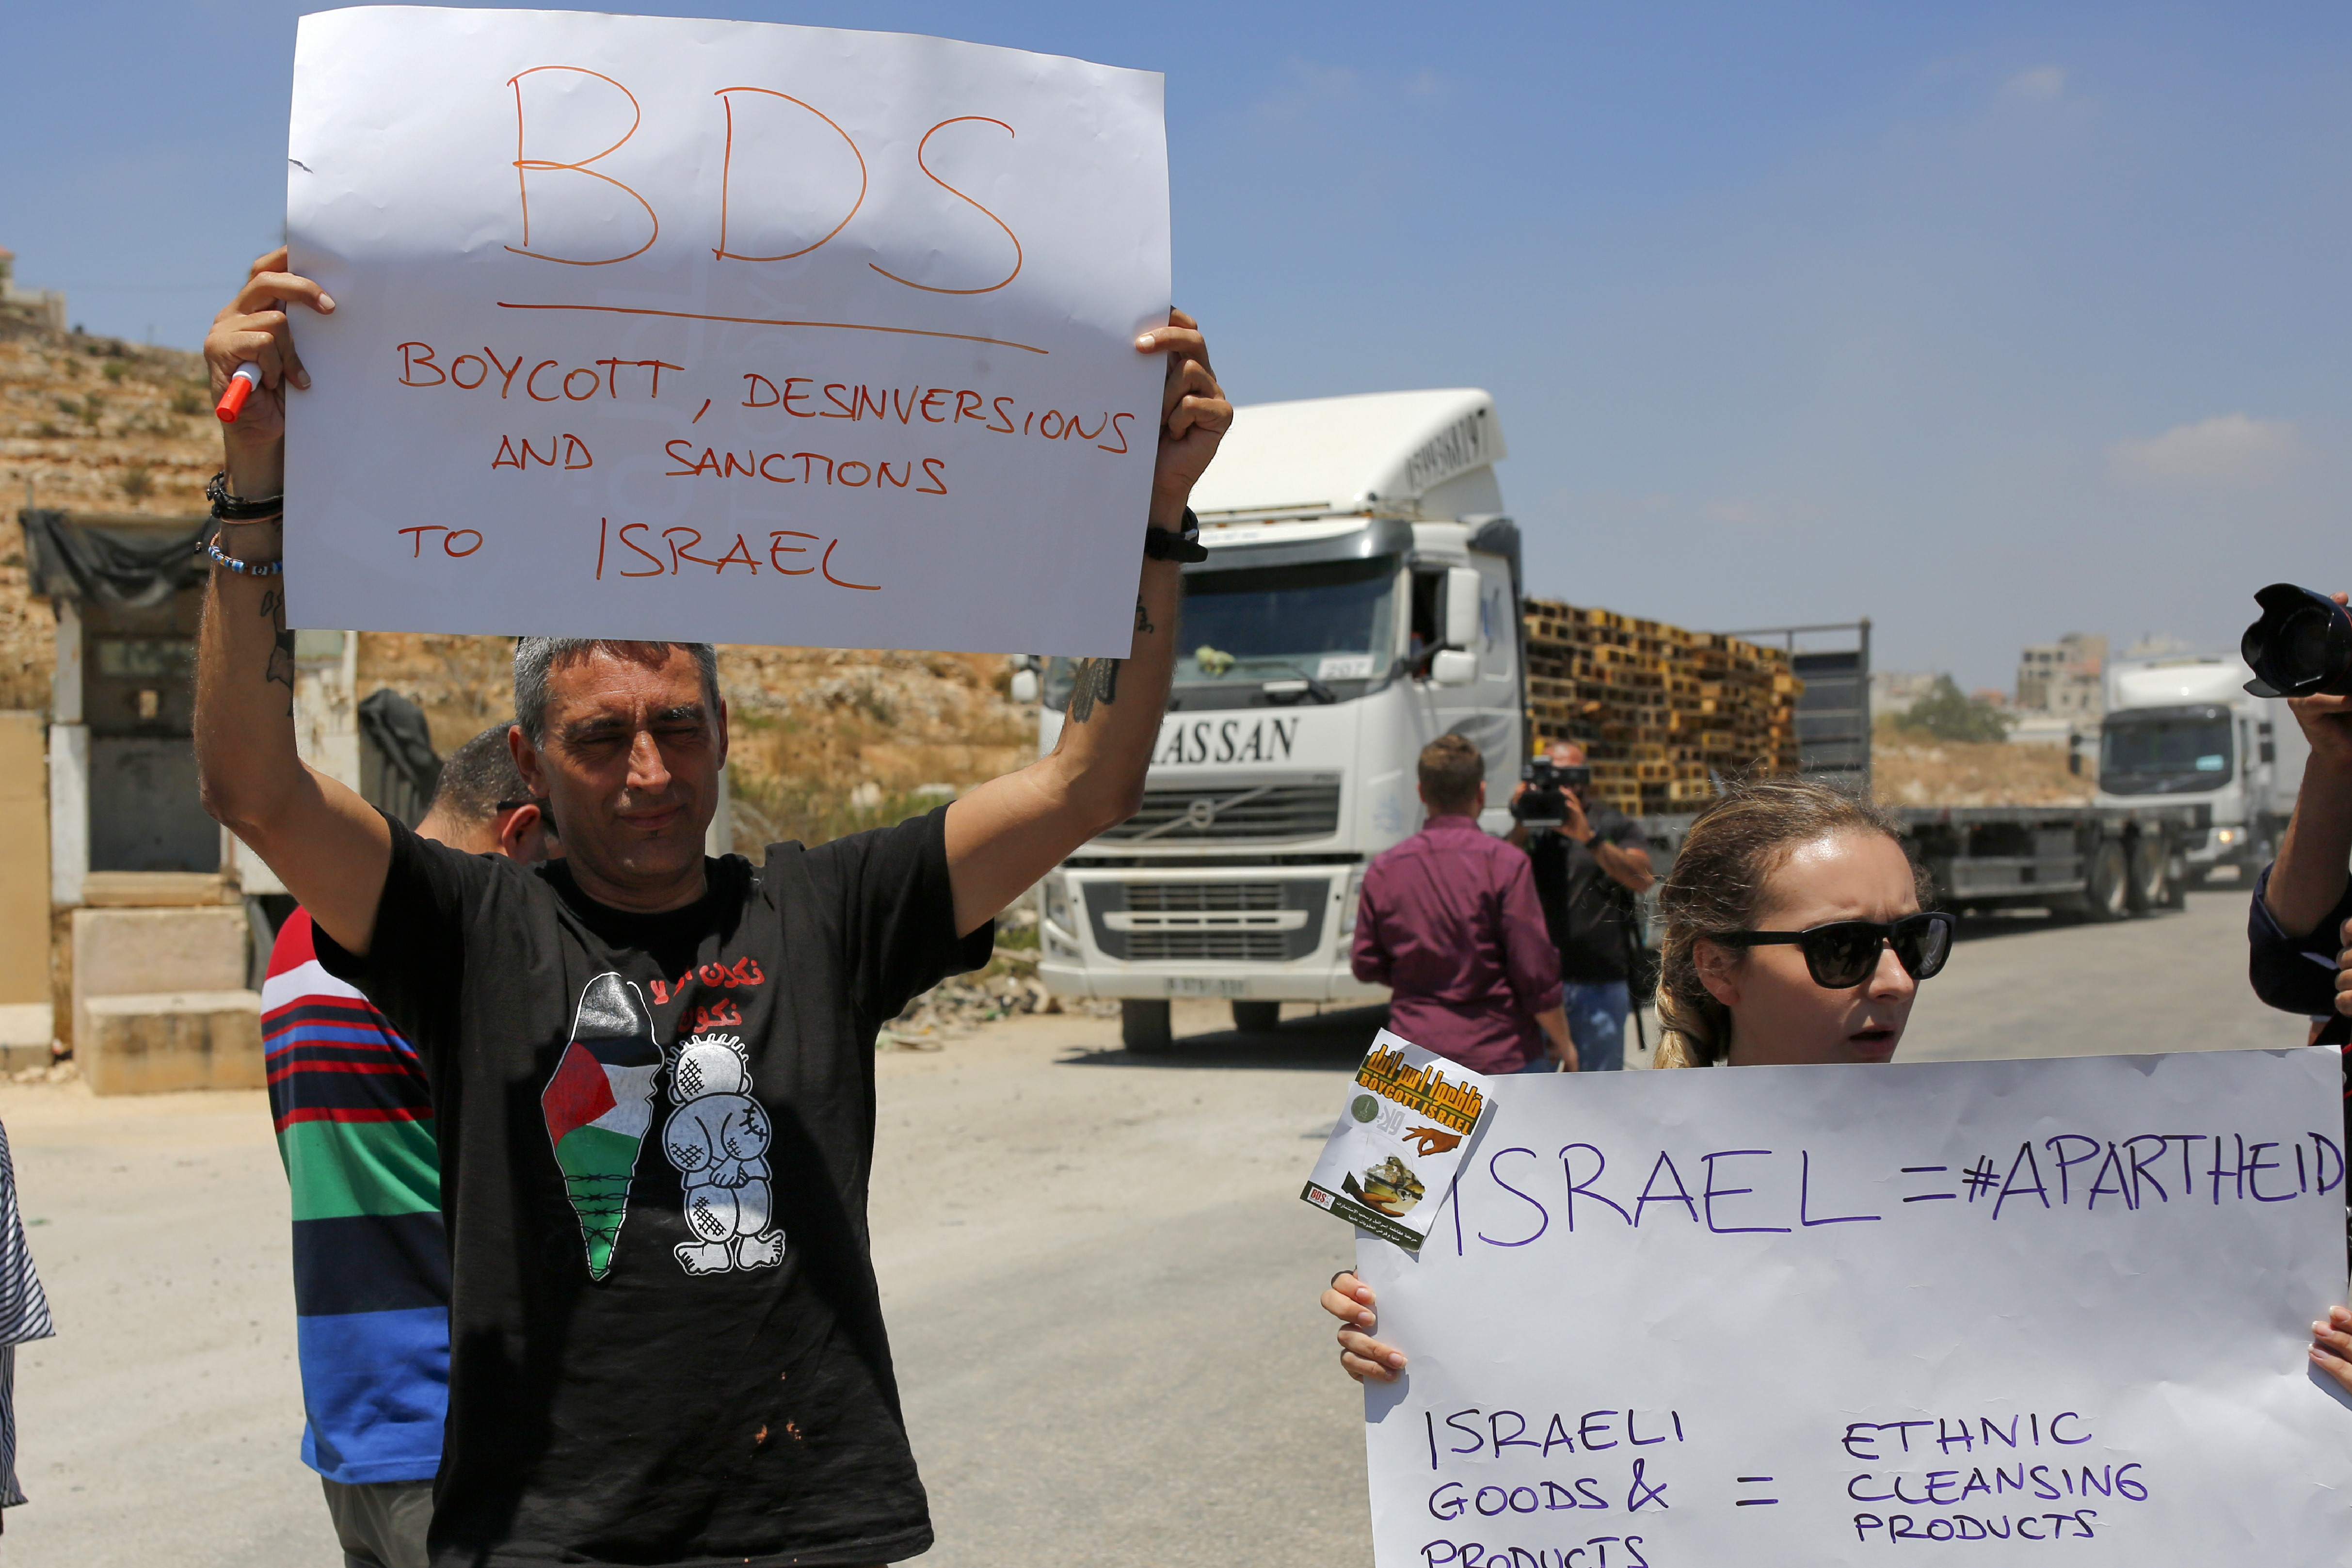 Palestinians demonstrate at the Ofer Israeli checkpoint near Ramallah, calling on Palestinians to boycott Israeli goodson 6 August (AFP)